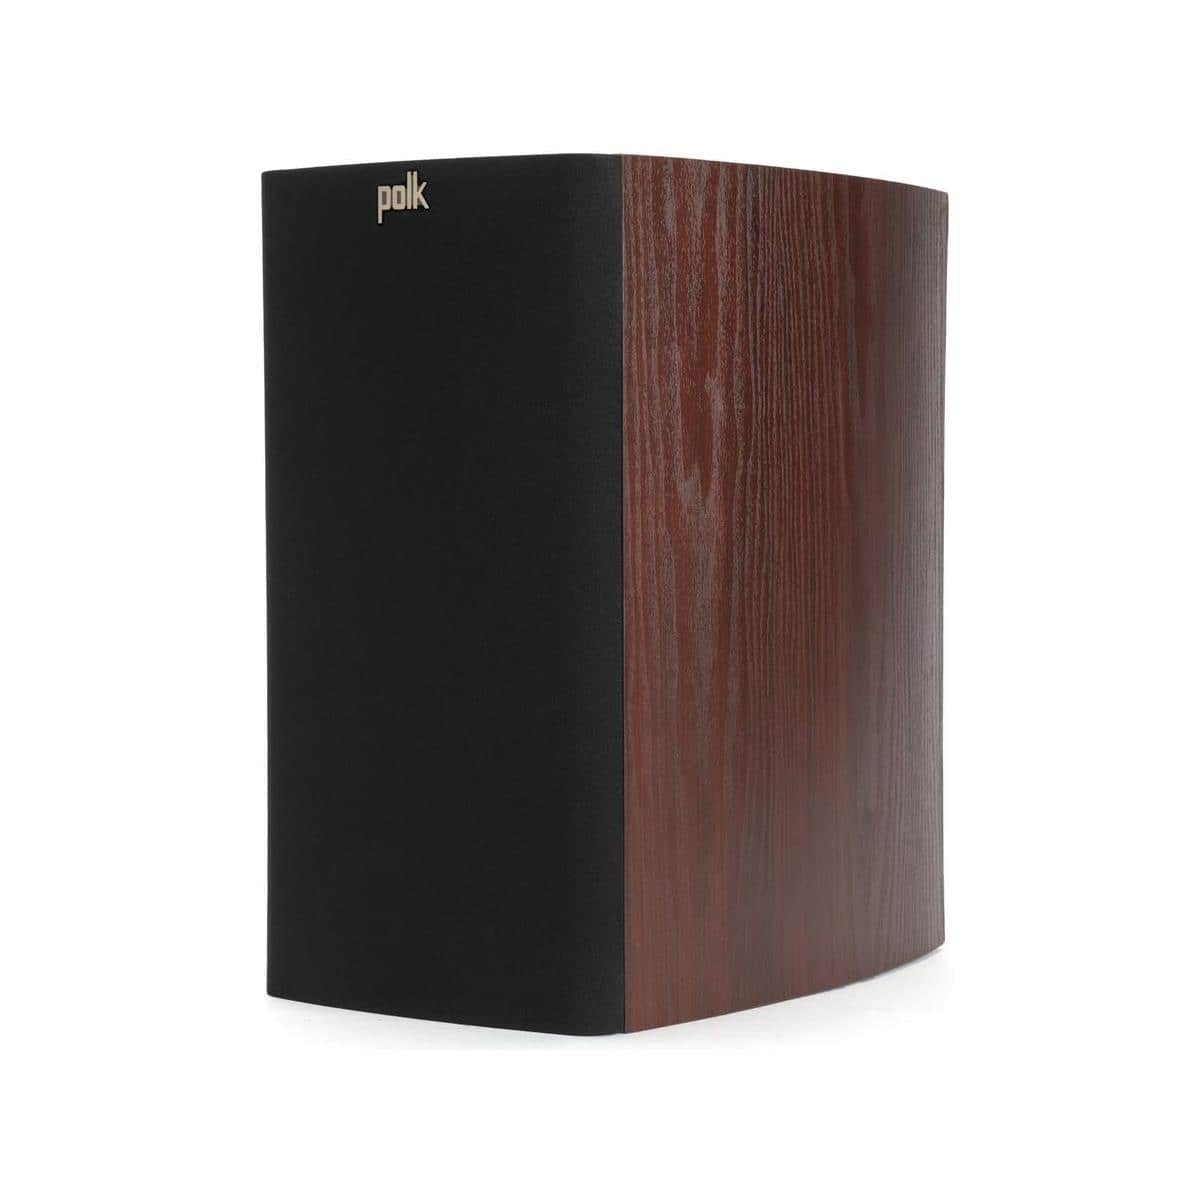 Polk Audio TSx 220B 2-Way Bookshelf Speakers (Black or Cherry, Pair) $120 after $15 Rebate + Free S/H